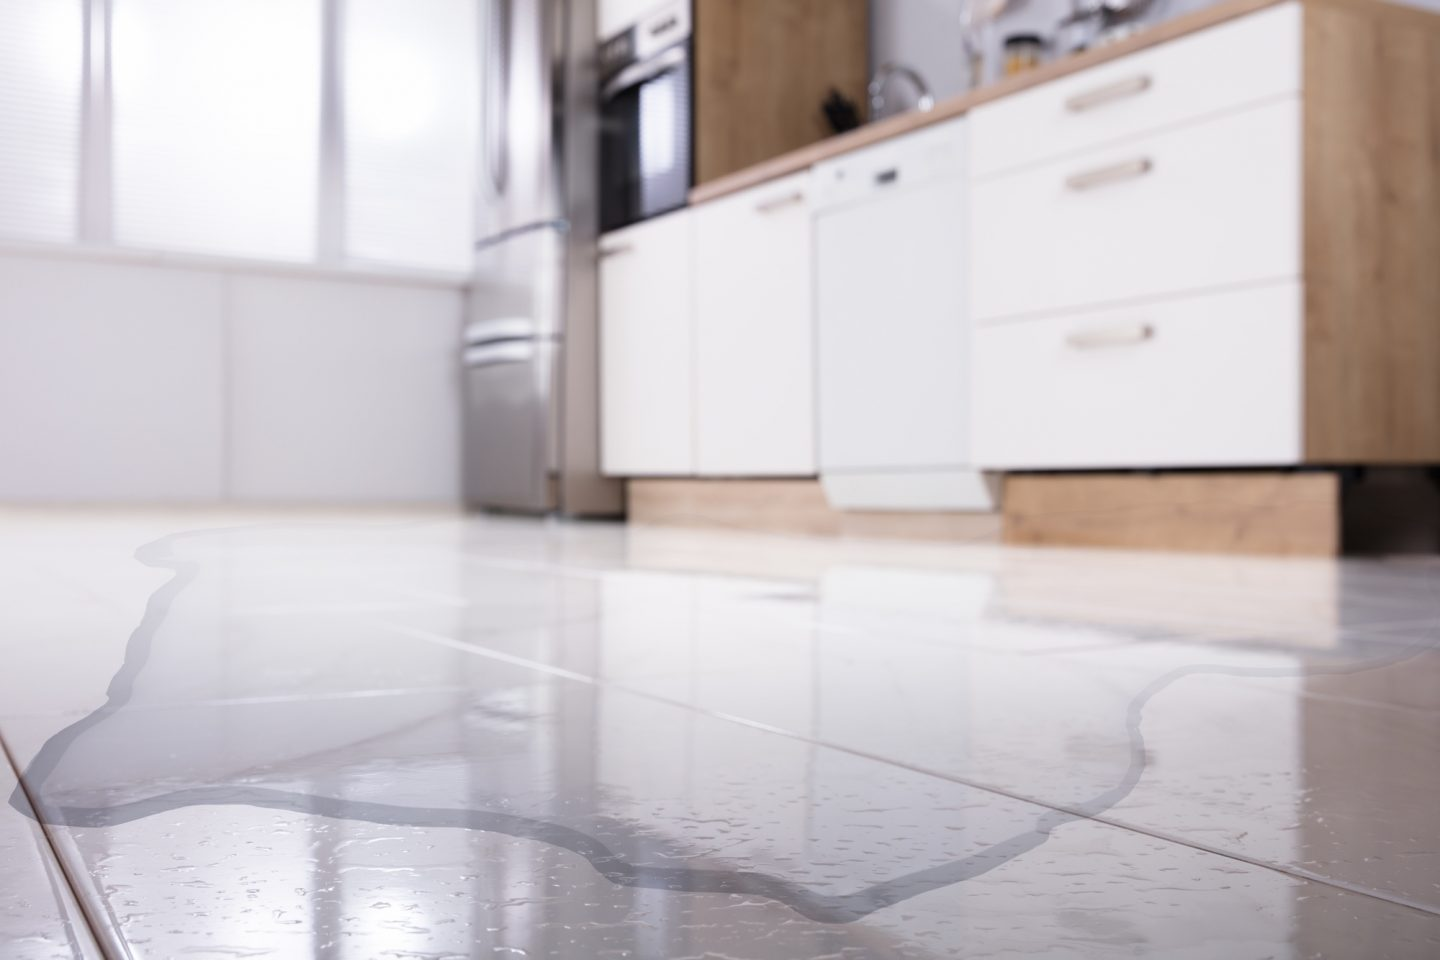 Water Damage Signs: How To Tell if Water Damage Is New or Old